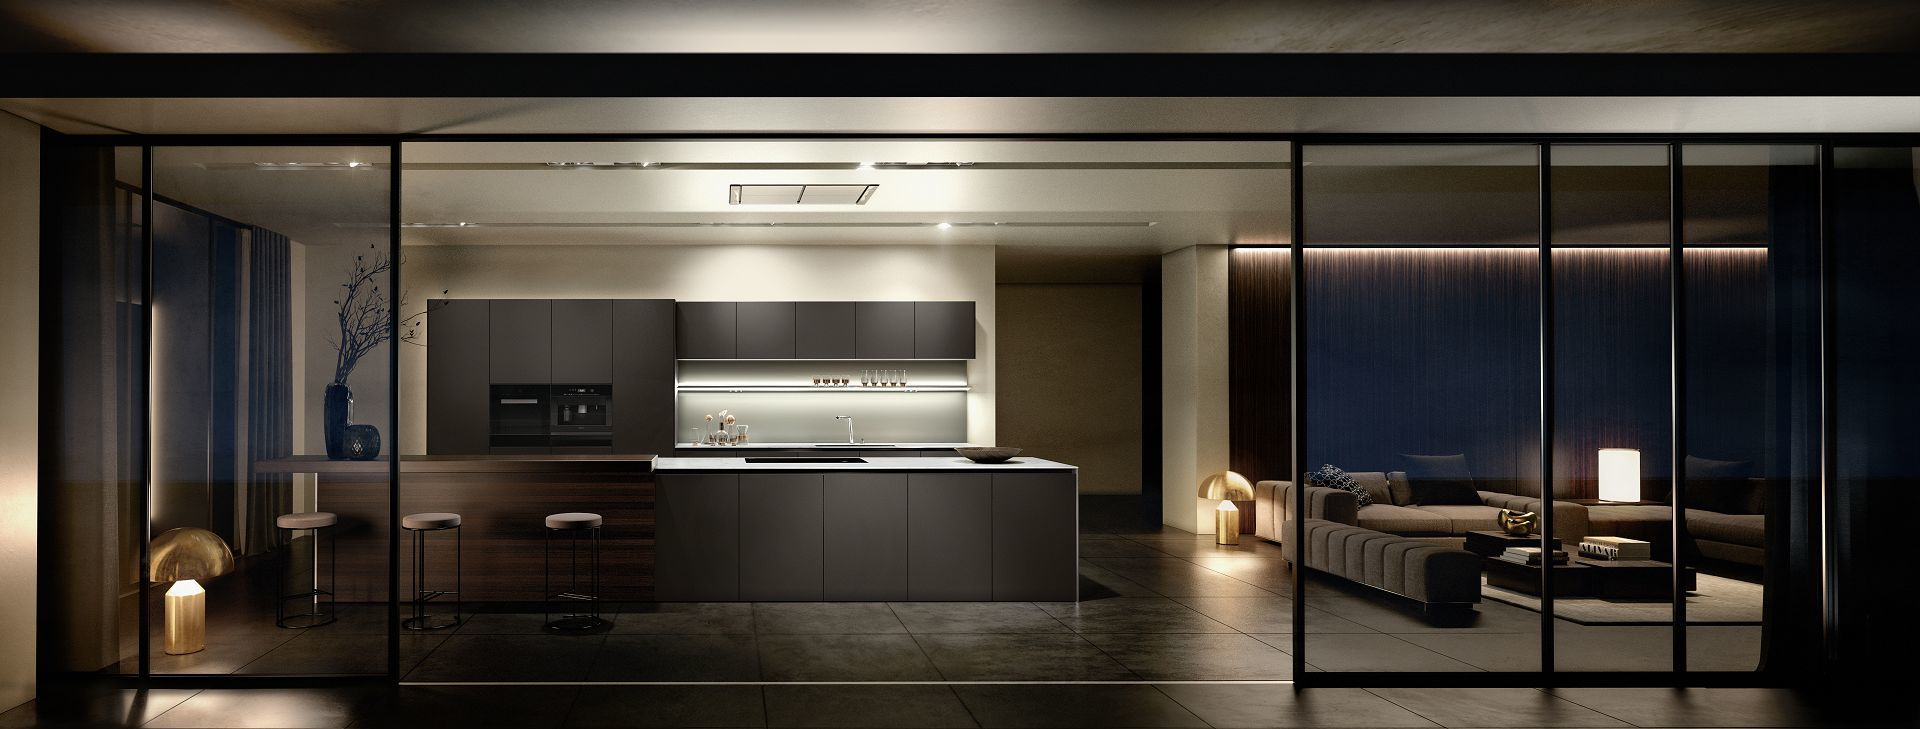 Design de cuisine par siematic l gance intemporelle made in germany for Cuisines design haut de gamme